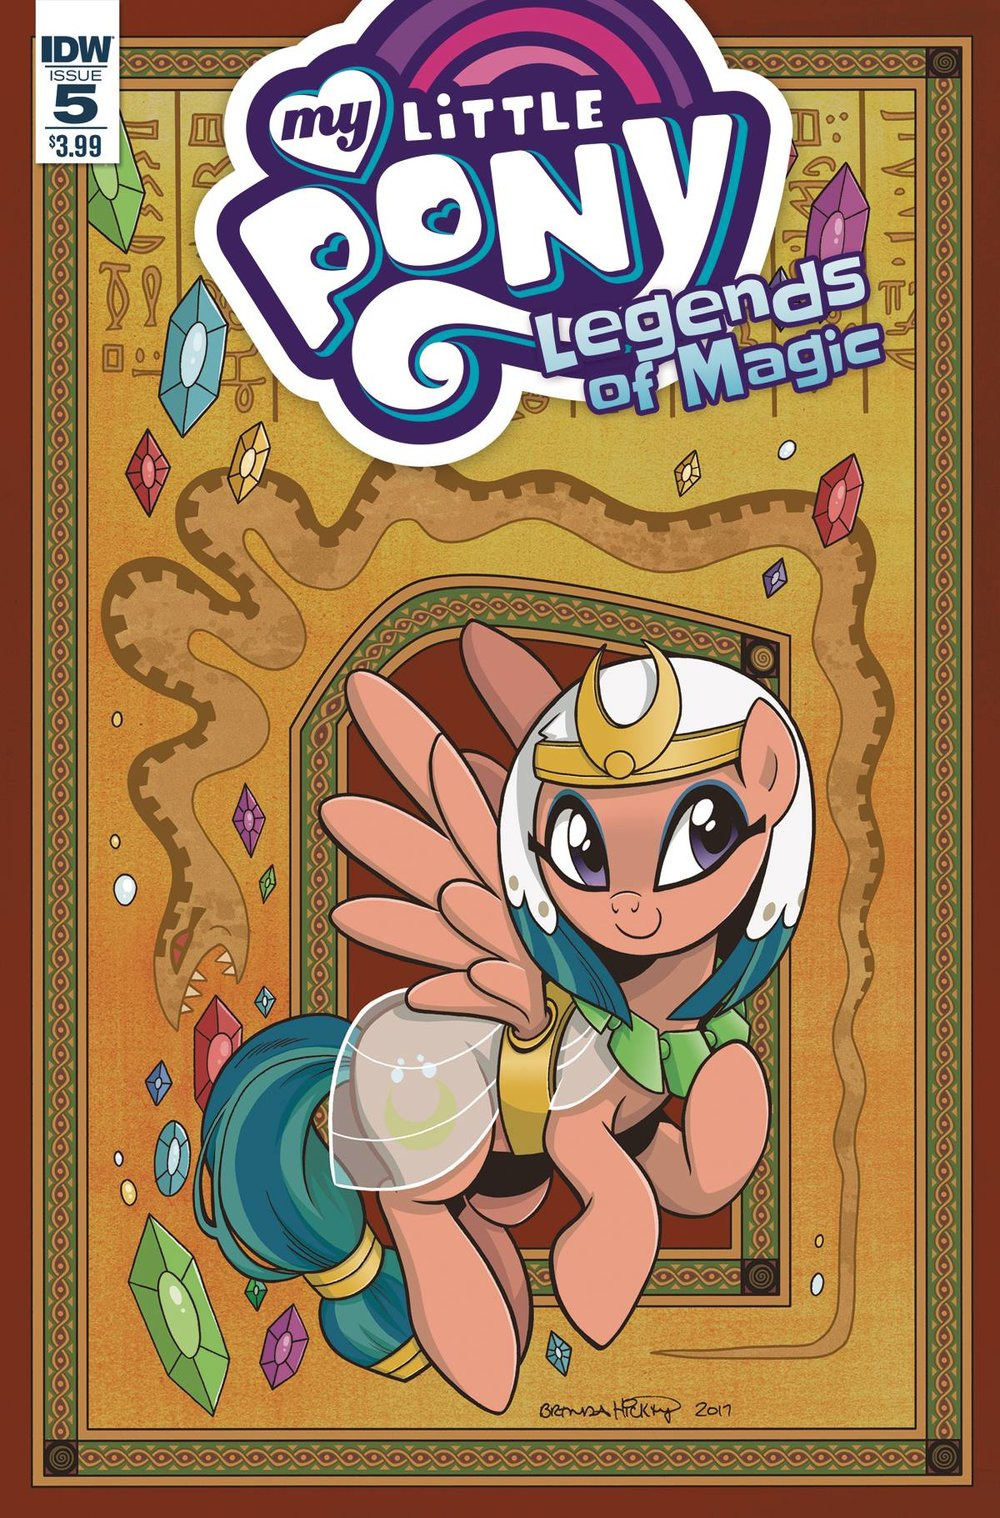 MY LITTLE PONY LEGENDS OF MAGIC 5 CVR A HICKEY.jpg